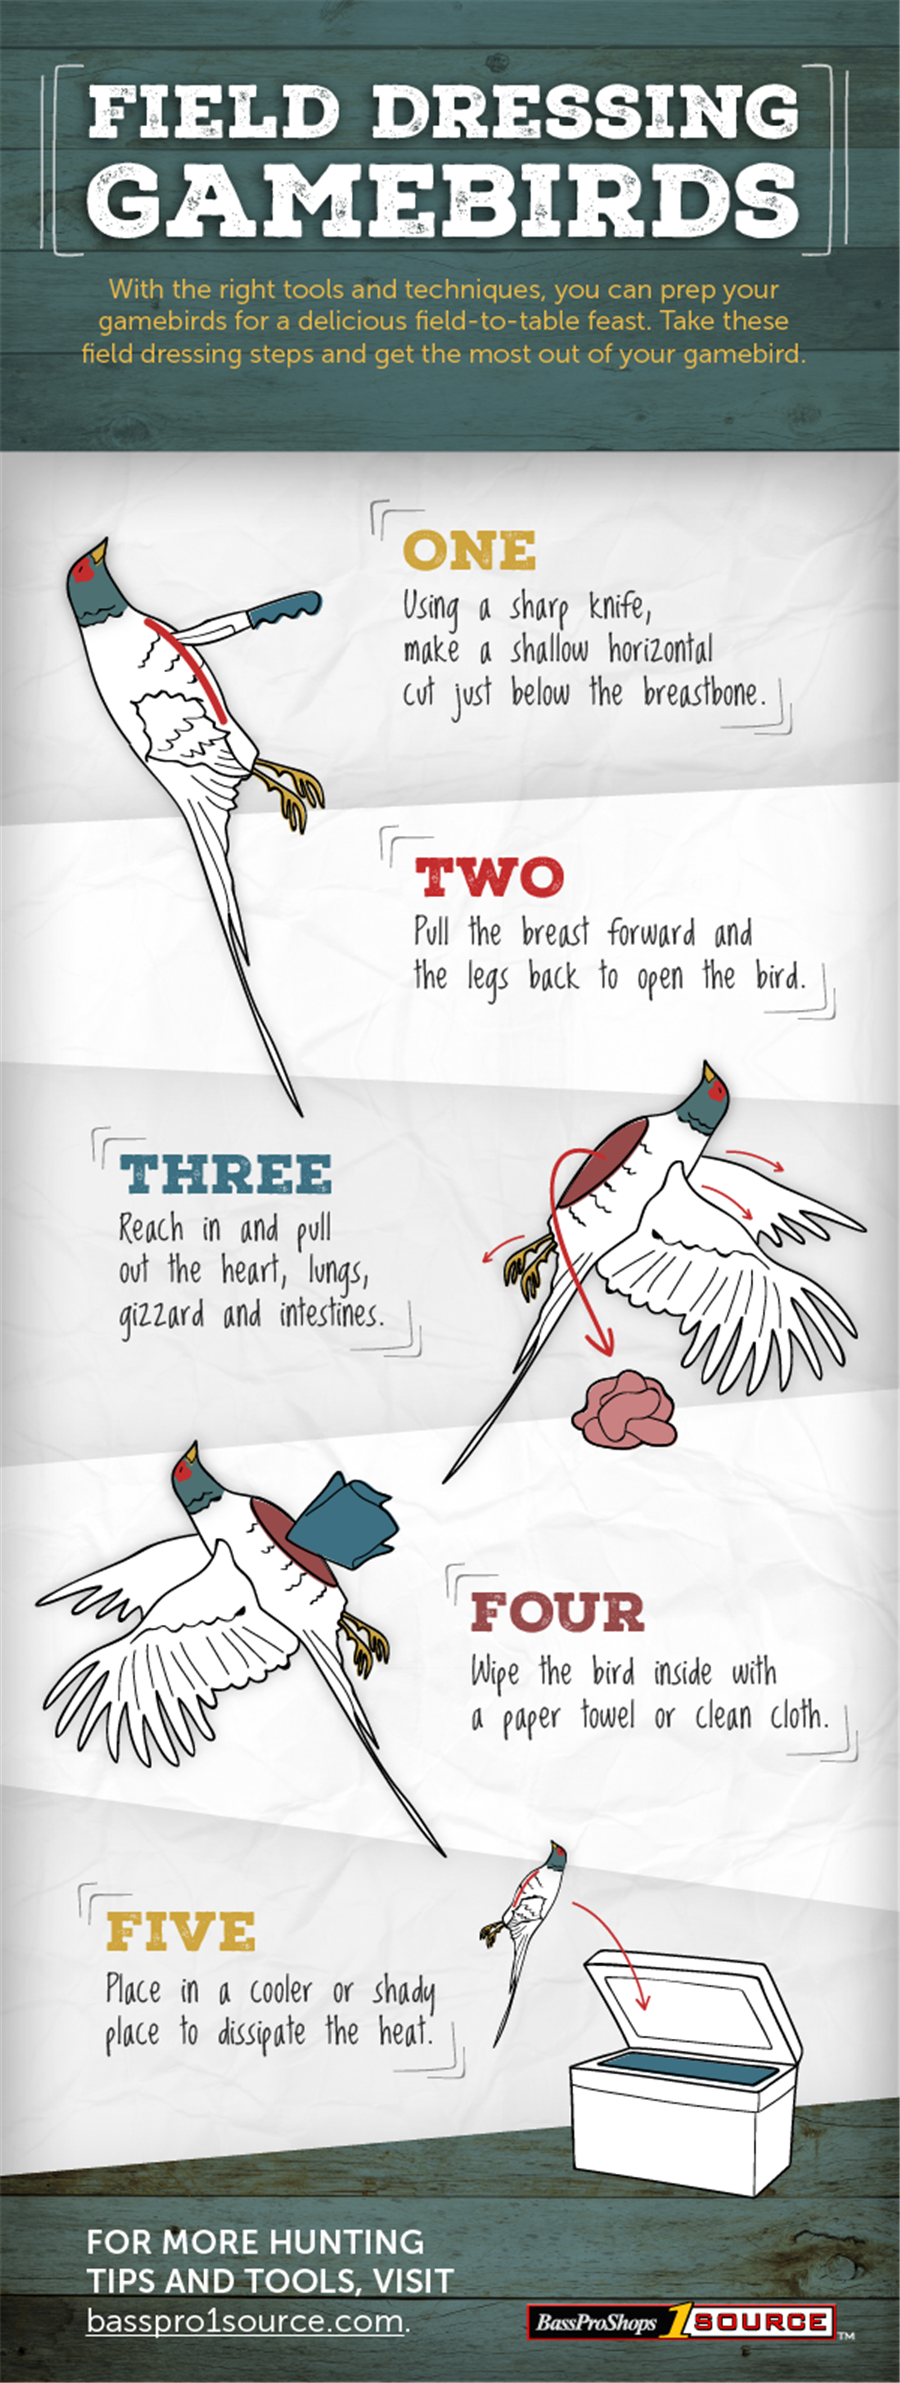 Artwork showing five steps to field dressing a gamebird